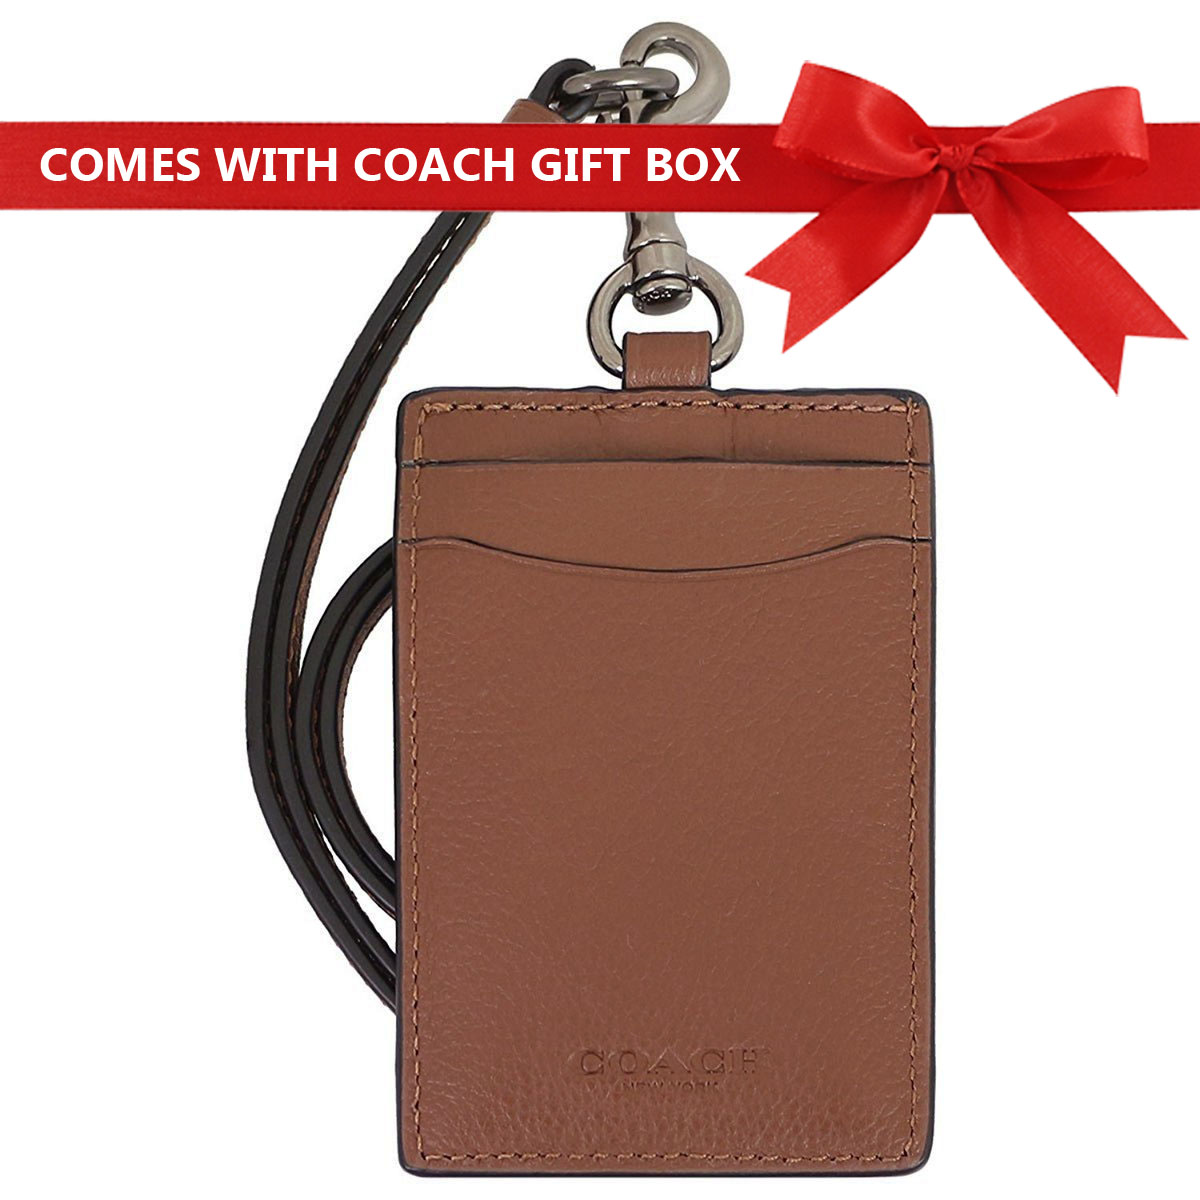 Coach Id Lanyard In Sport Calf Leather Dark Saddle Brown # F58114